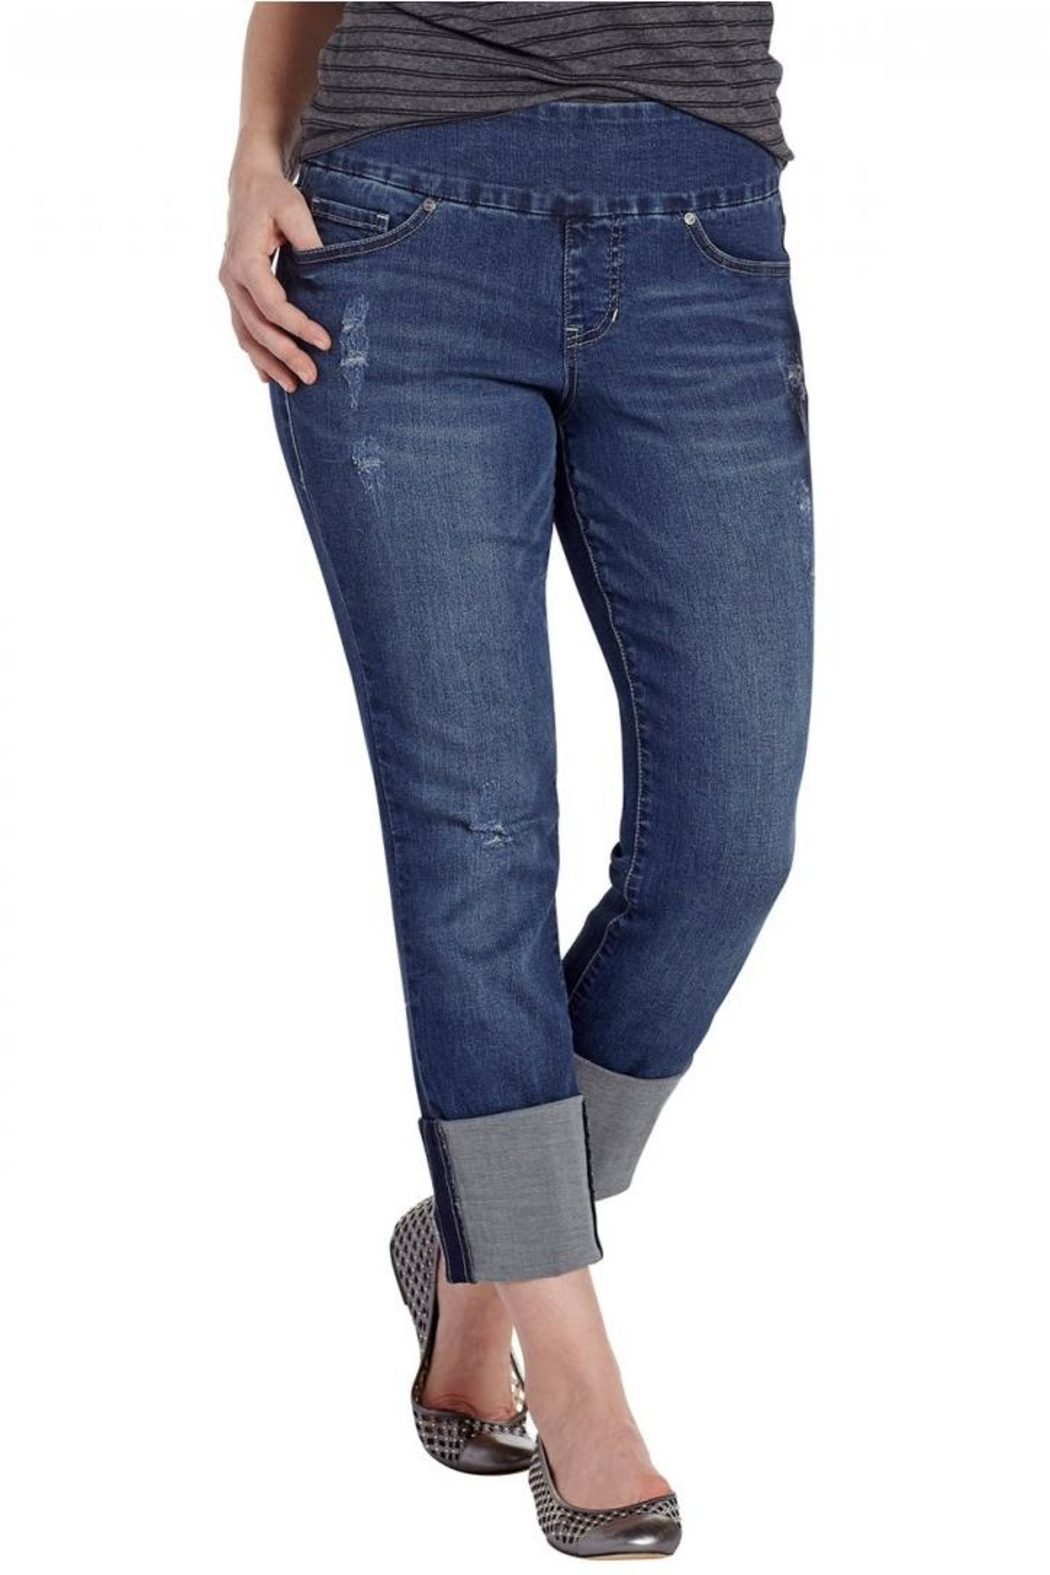 JAG Cuffed Distressed Jeans - Main Image